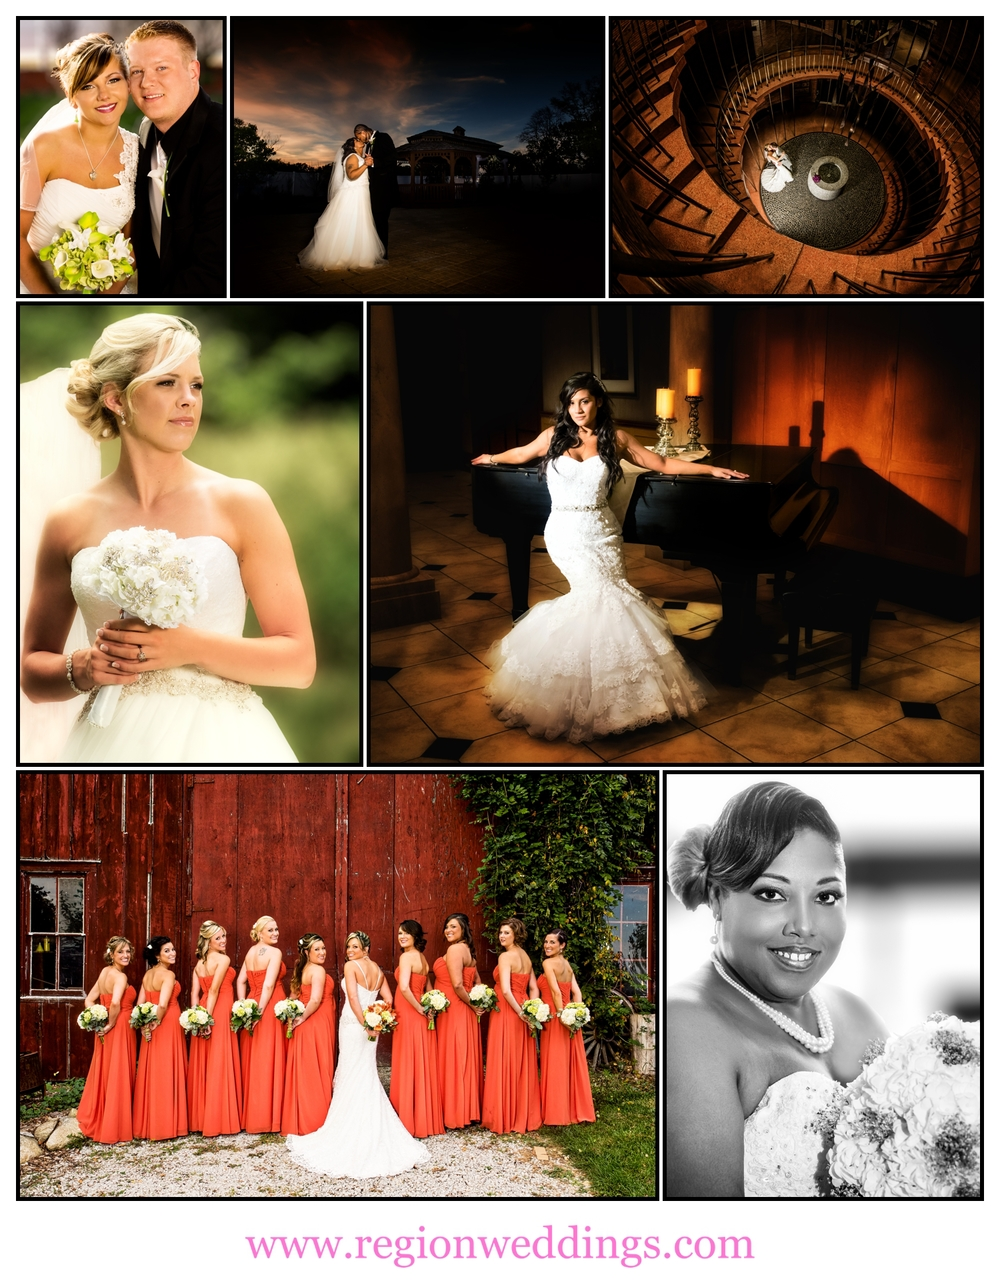 A collection of images from Northwest Indiana wedding photographer Steve Vansak of Region Weddings.